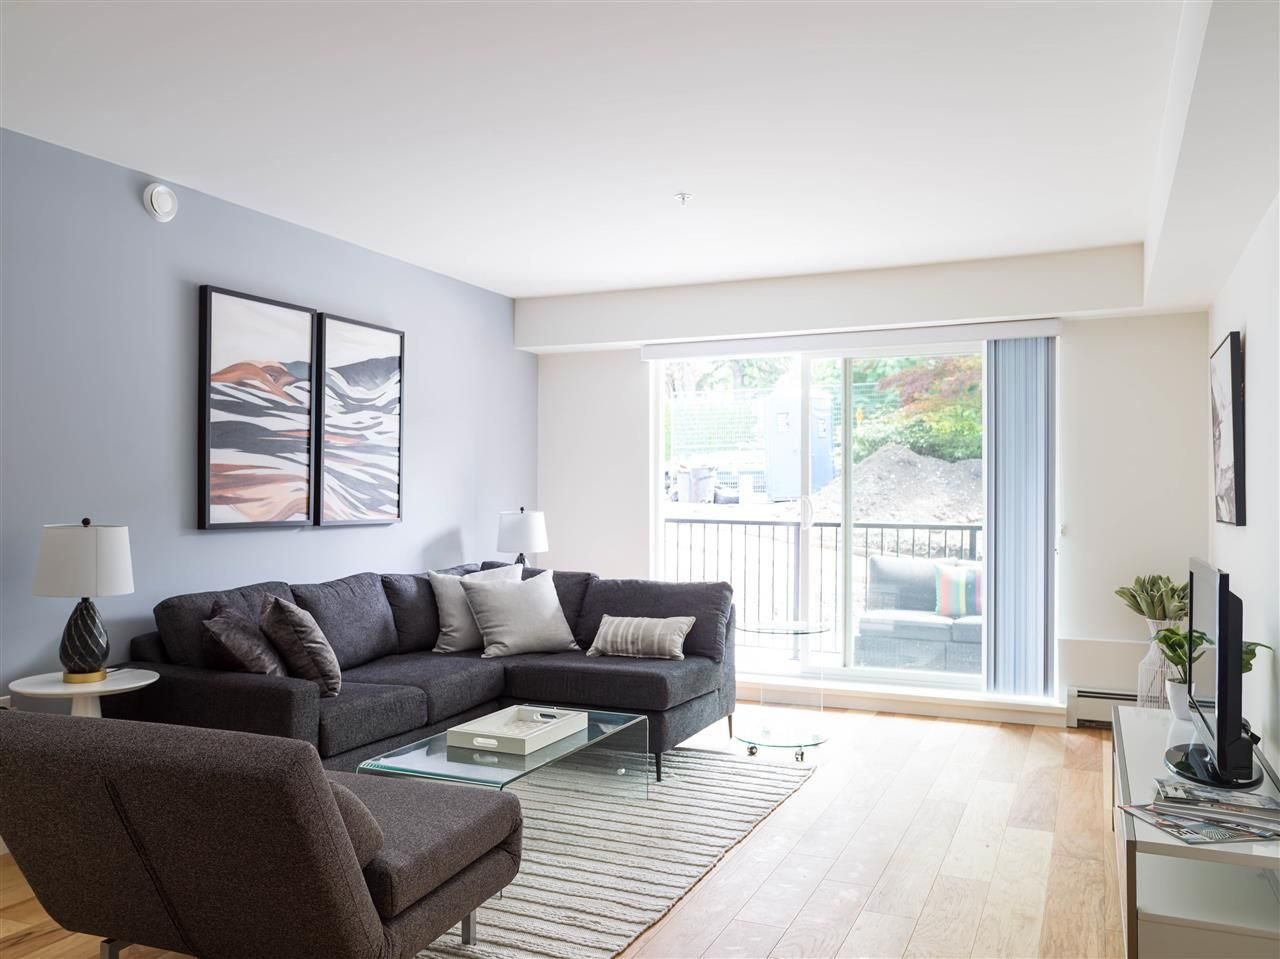 Main Photo: 109 357 E 2ND STREET in North Vancouver: Lower Lonsdale Condo for sale : MLS®# R2483502